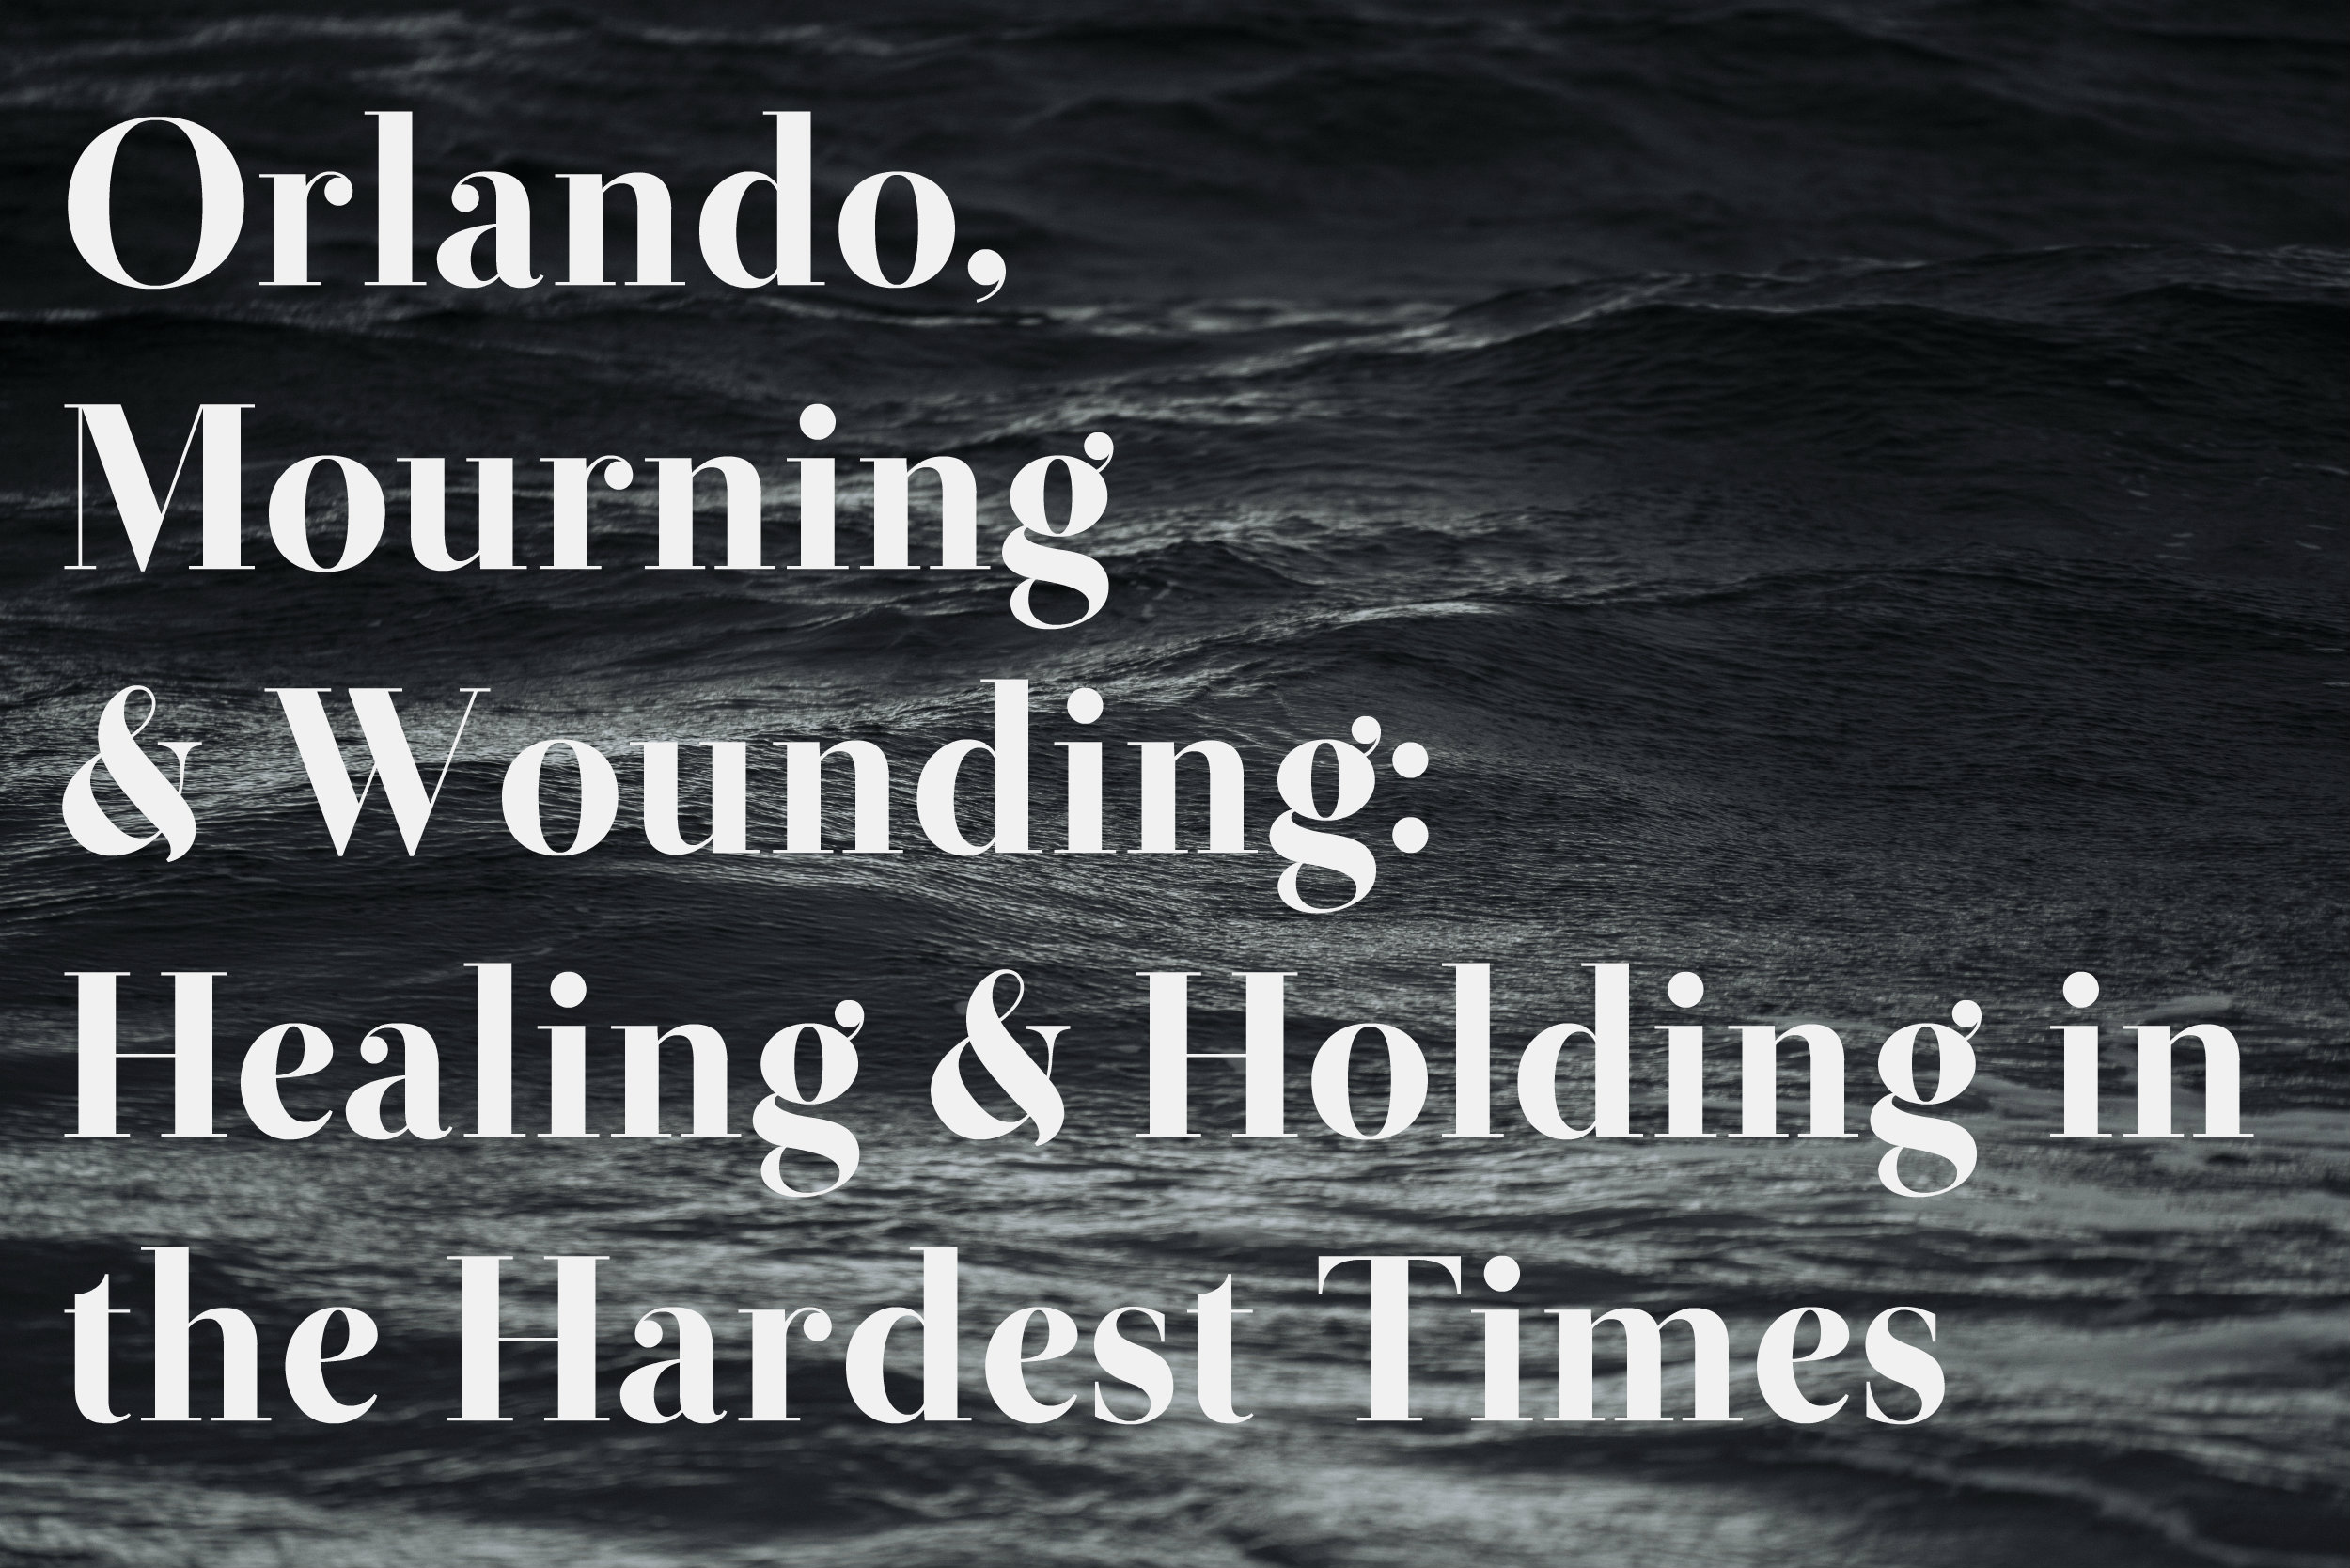 Orlando, Mourning & Wounding: Healing & Holding in the Hardest Times white text on grey stormy sea image